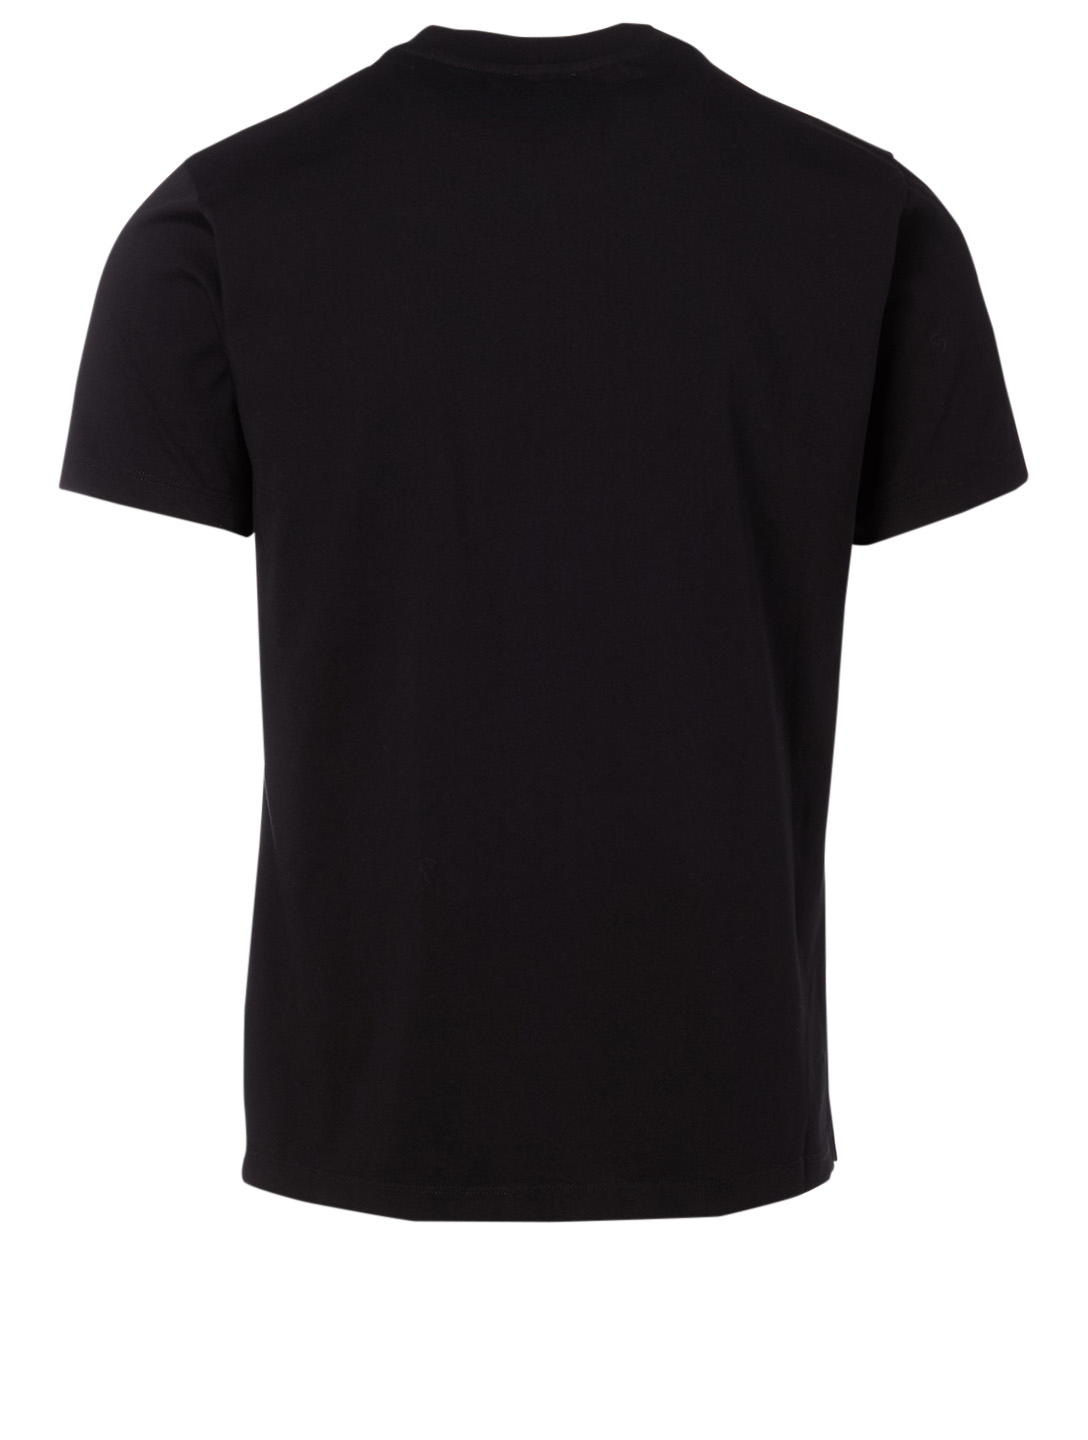 KENZO Classic Tiger T-shirt Men's Black